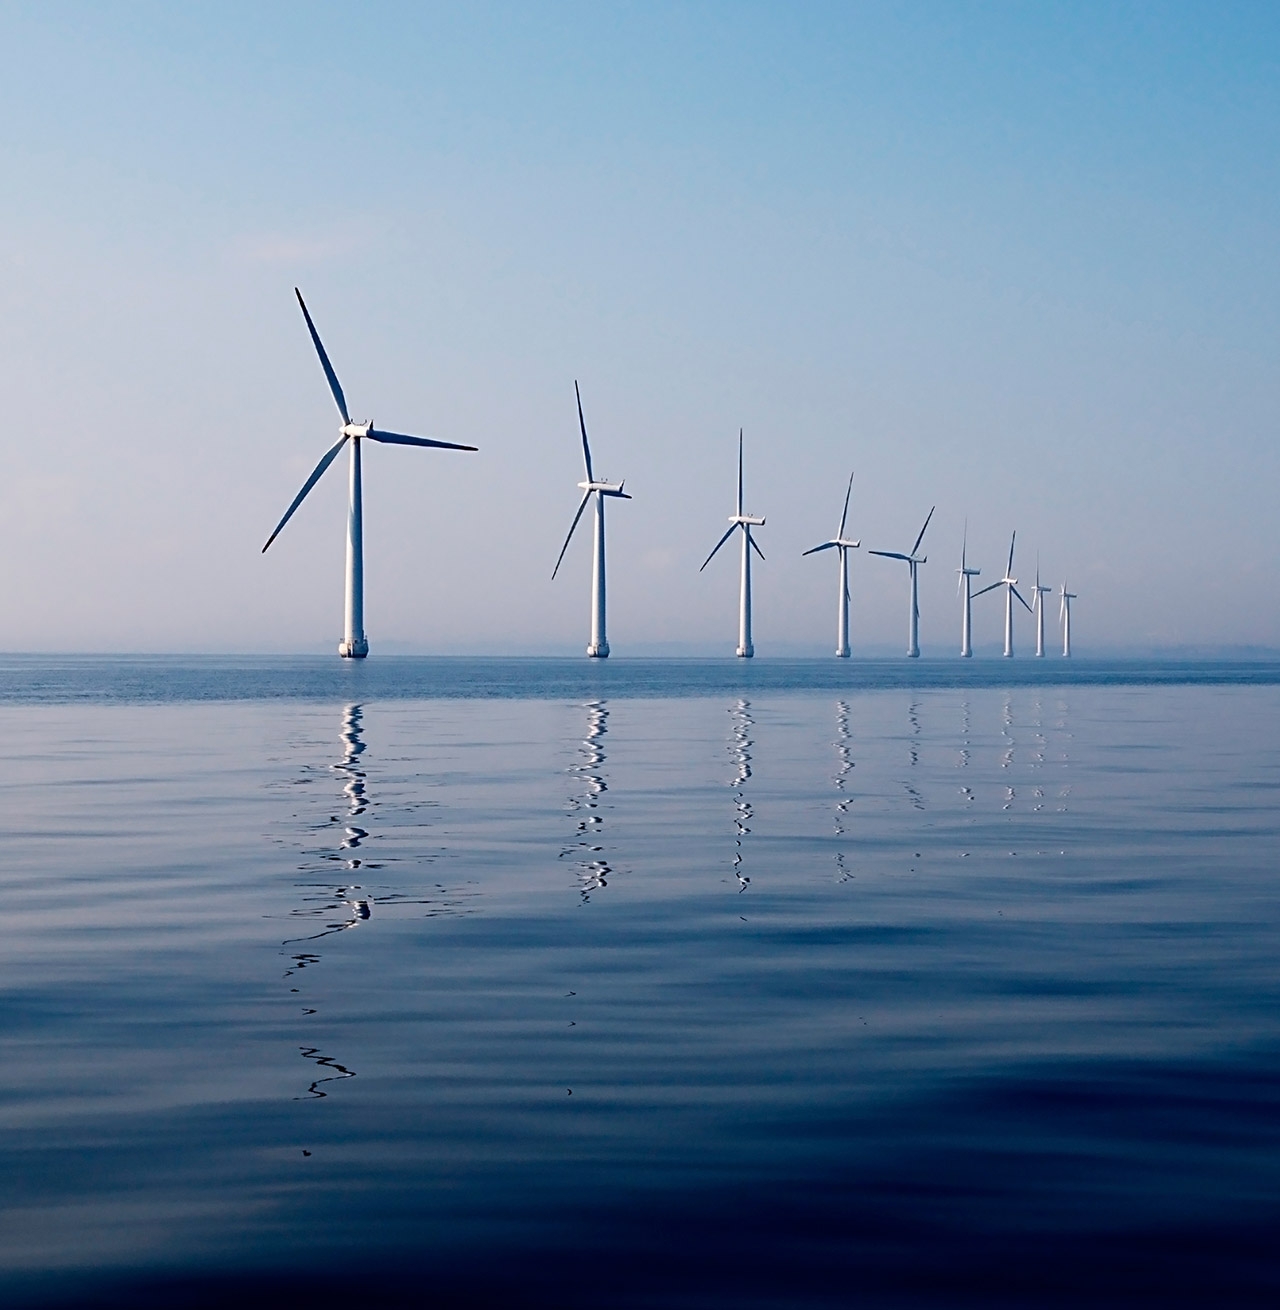 Row of wind turbines in sea, calm water